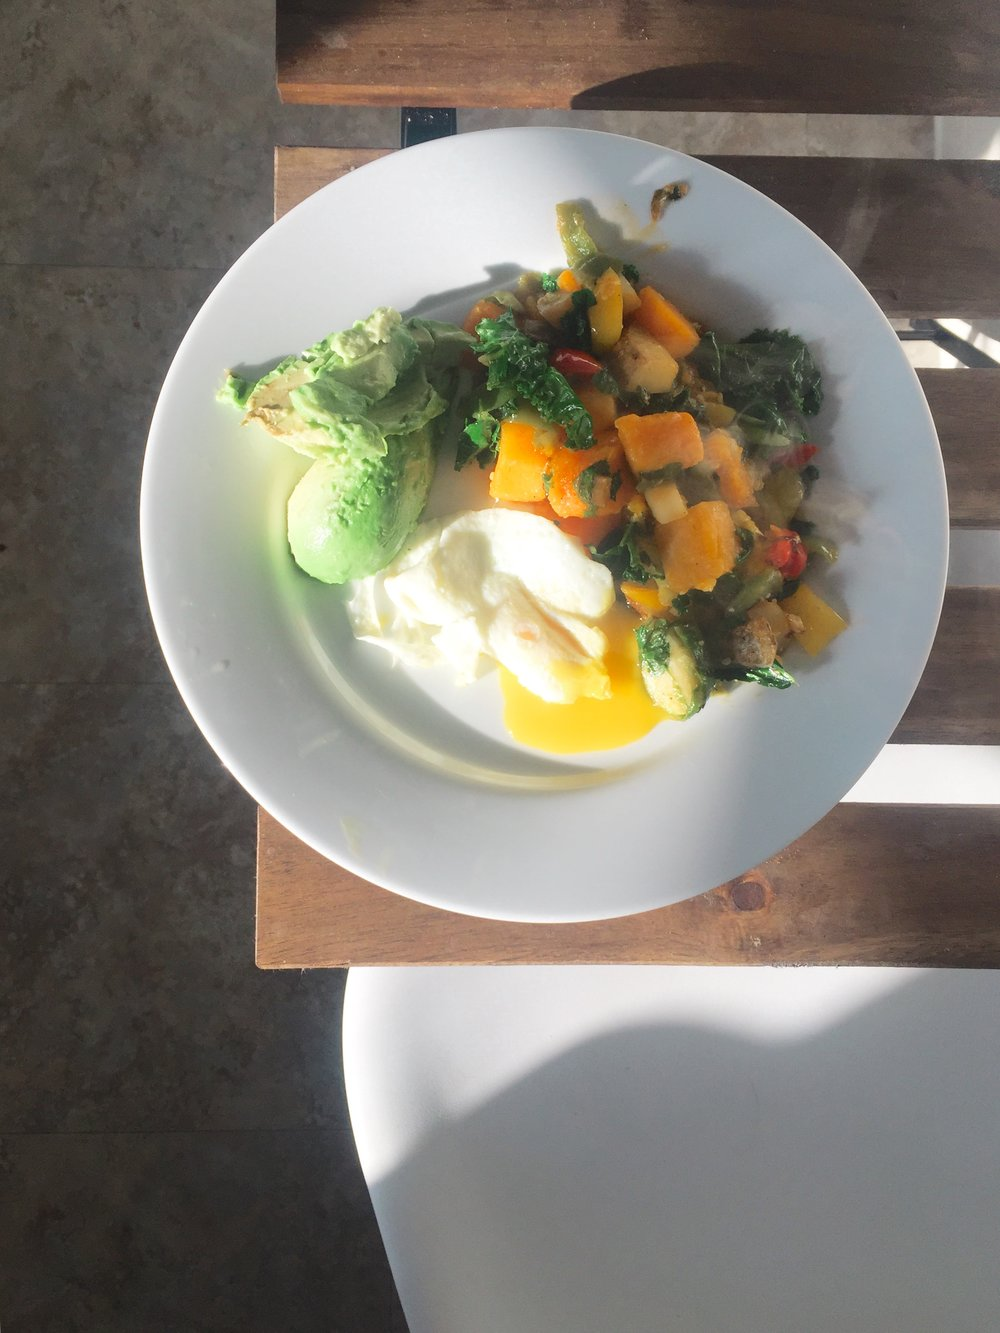 Butternut squash, potato, peppers, and kale with eggs and avocado